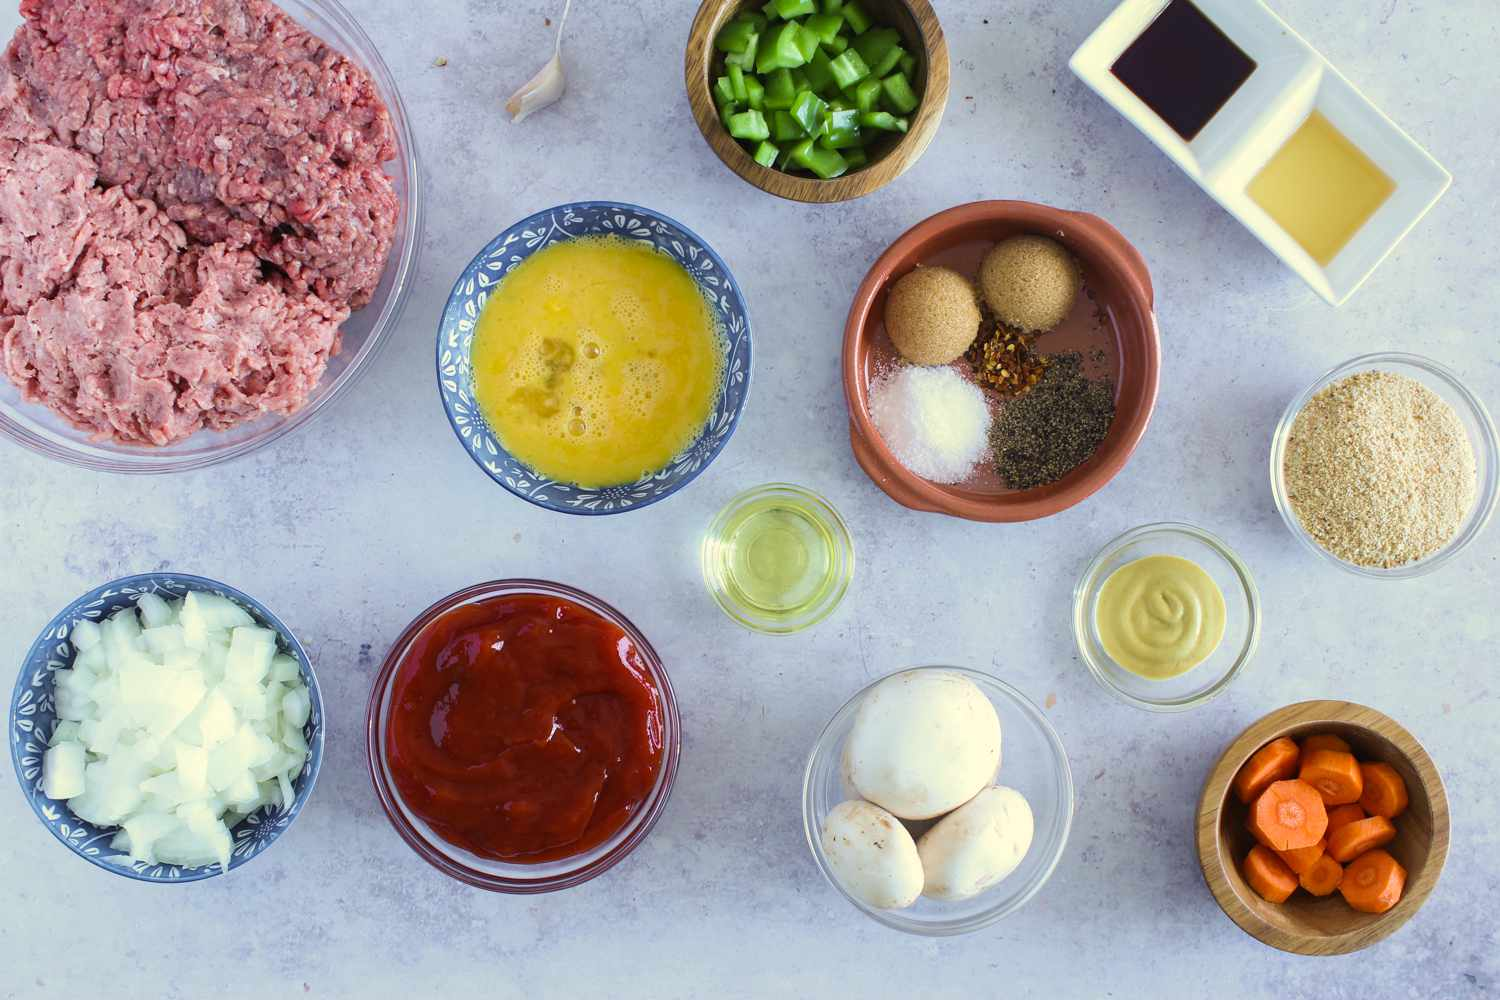 Ingredients for turkey and beef meatloaf